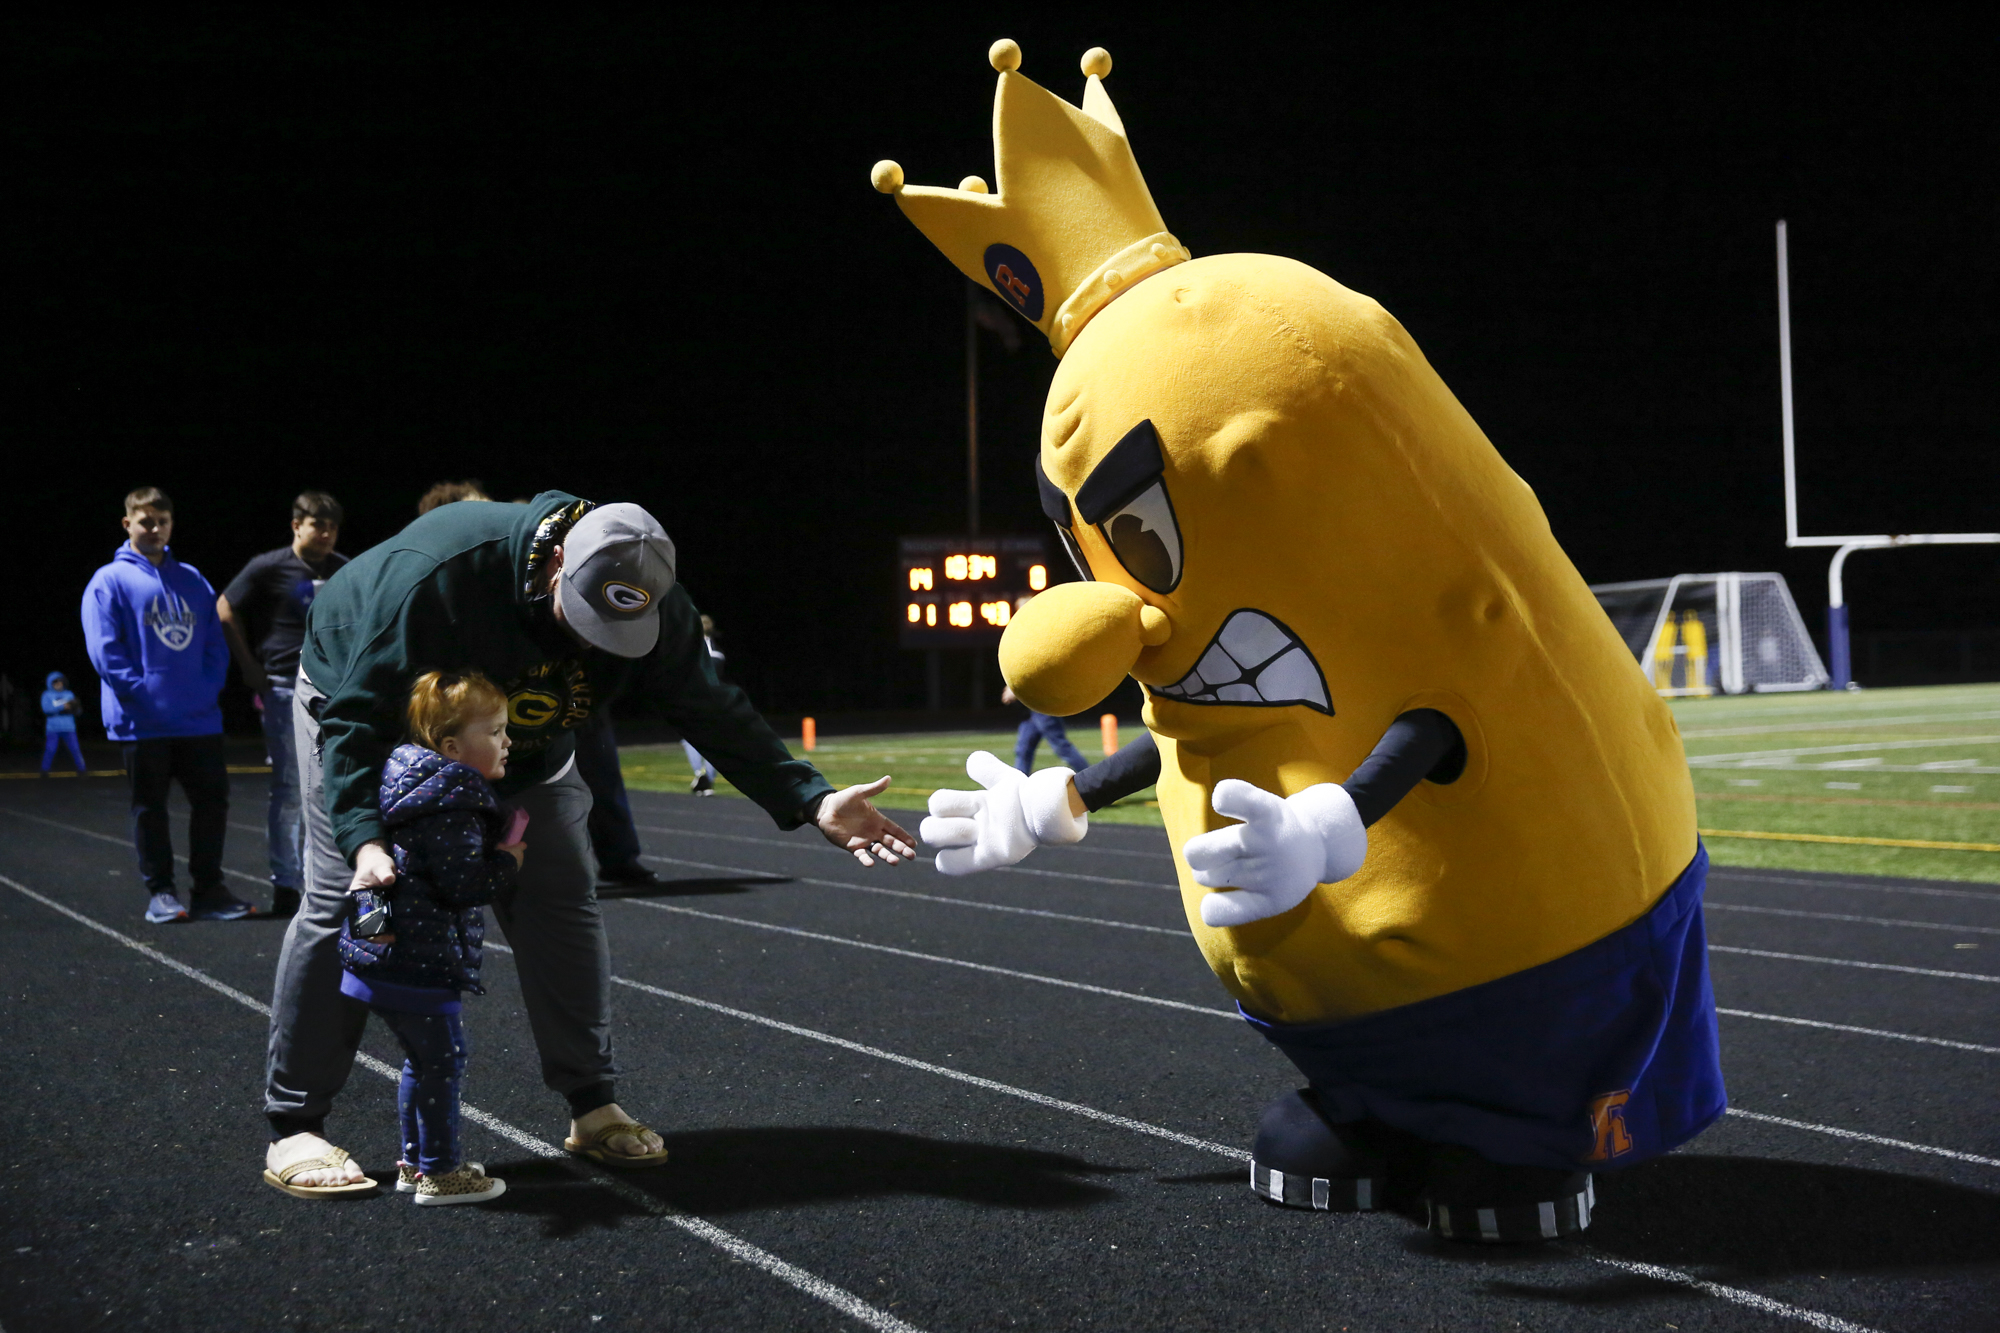 A young fan meets the Ridgefield Spudders team mascot during a 2A Greater St. Helens League football game at Ridgefield High School on Thursday, Oct. 7, 2021.